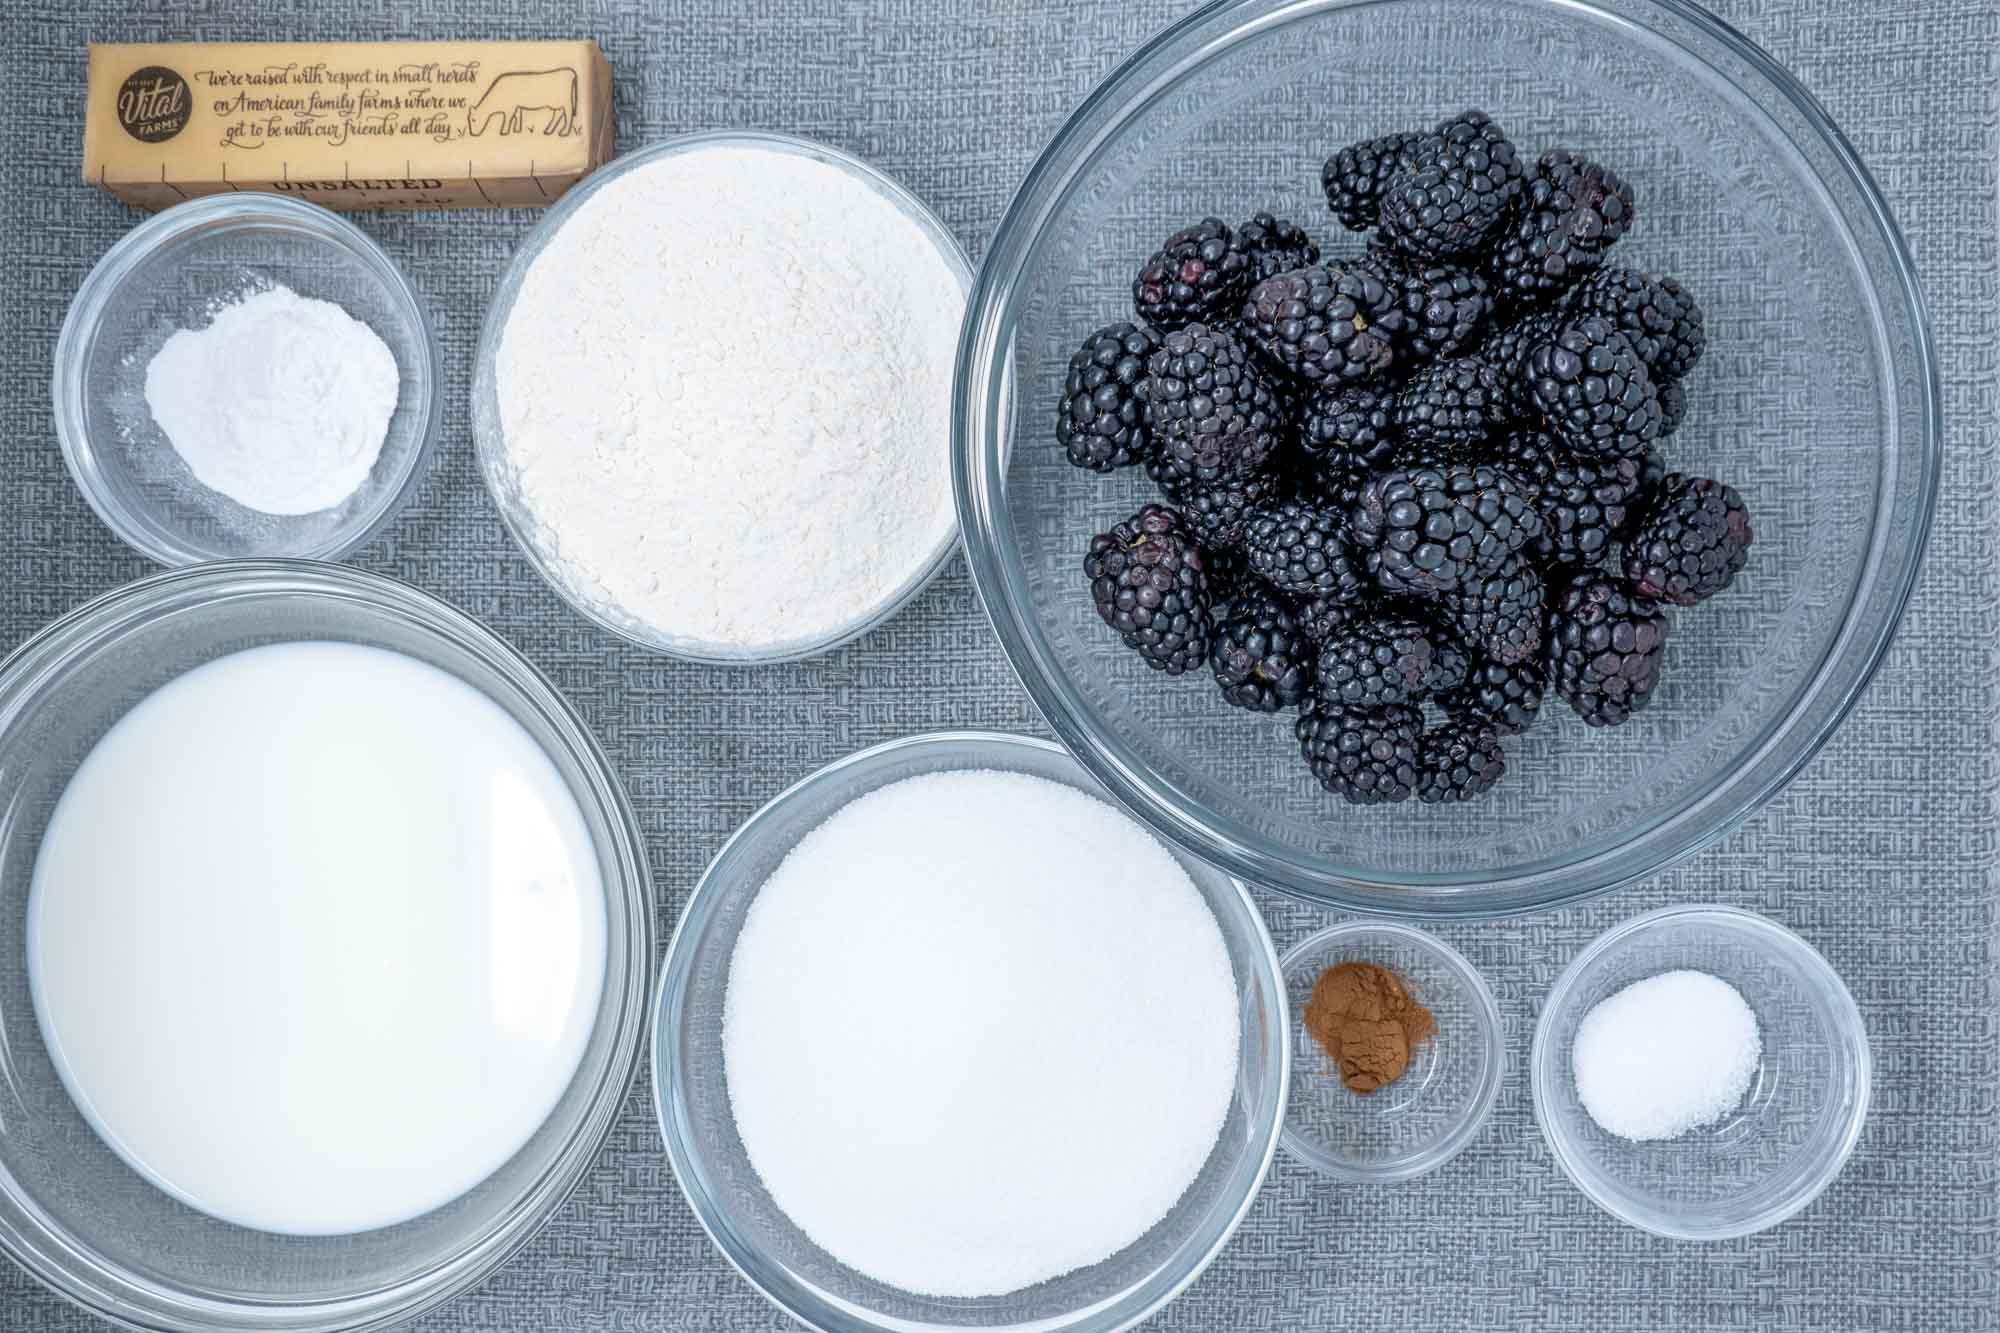 Blackberries, cinnamon, sugar, stick of butter, and other ingredients in bowls on a table